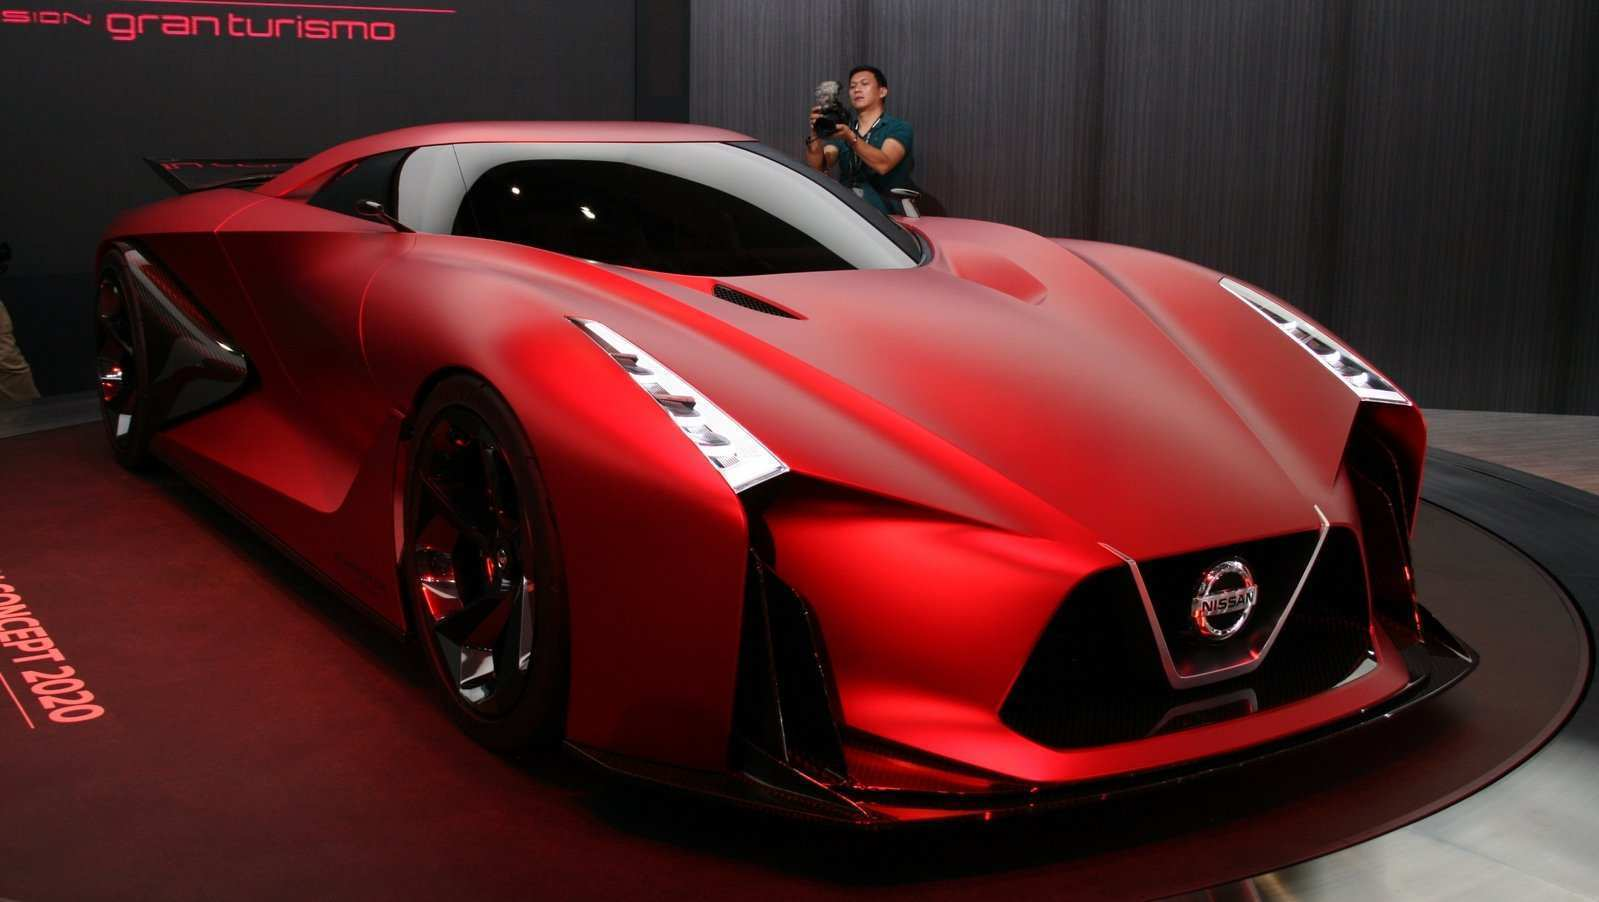 83 New Nissan Concept 2020 Price In India Pricing